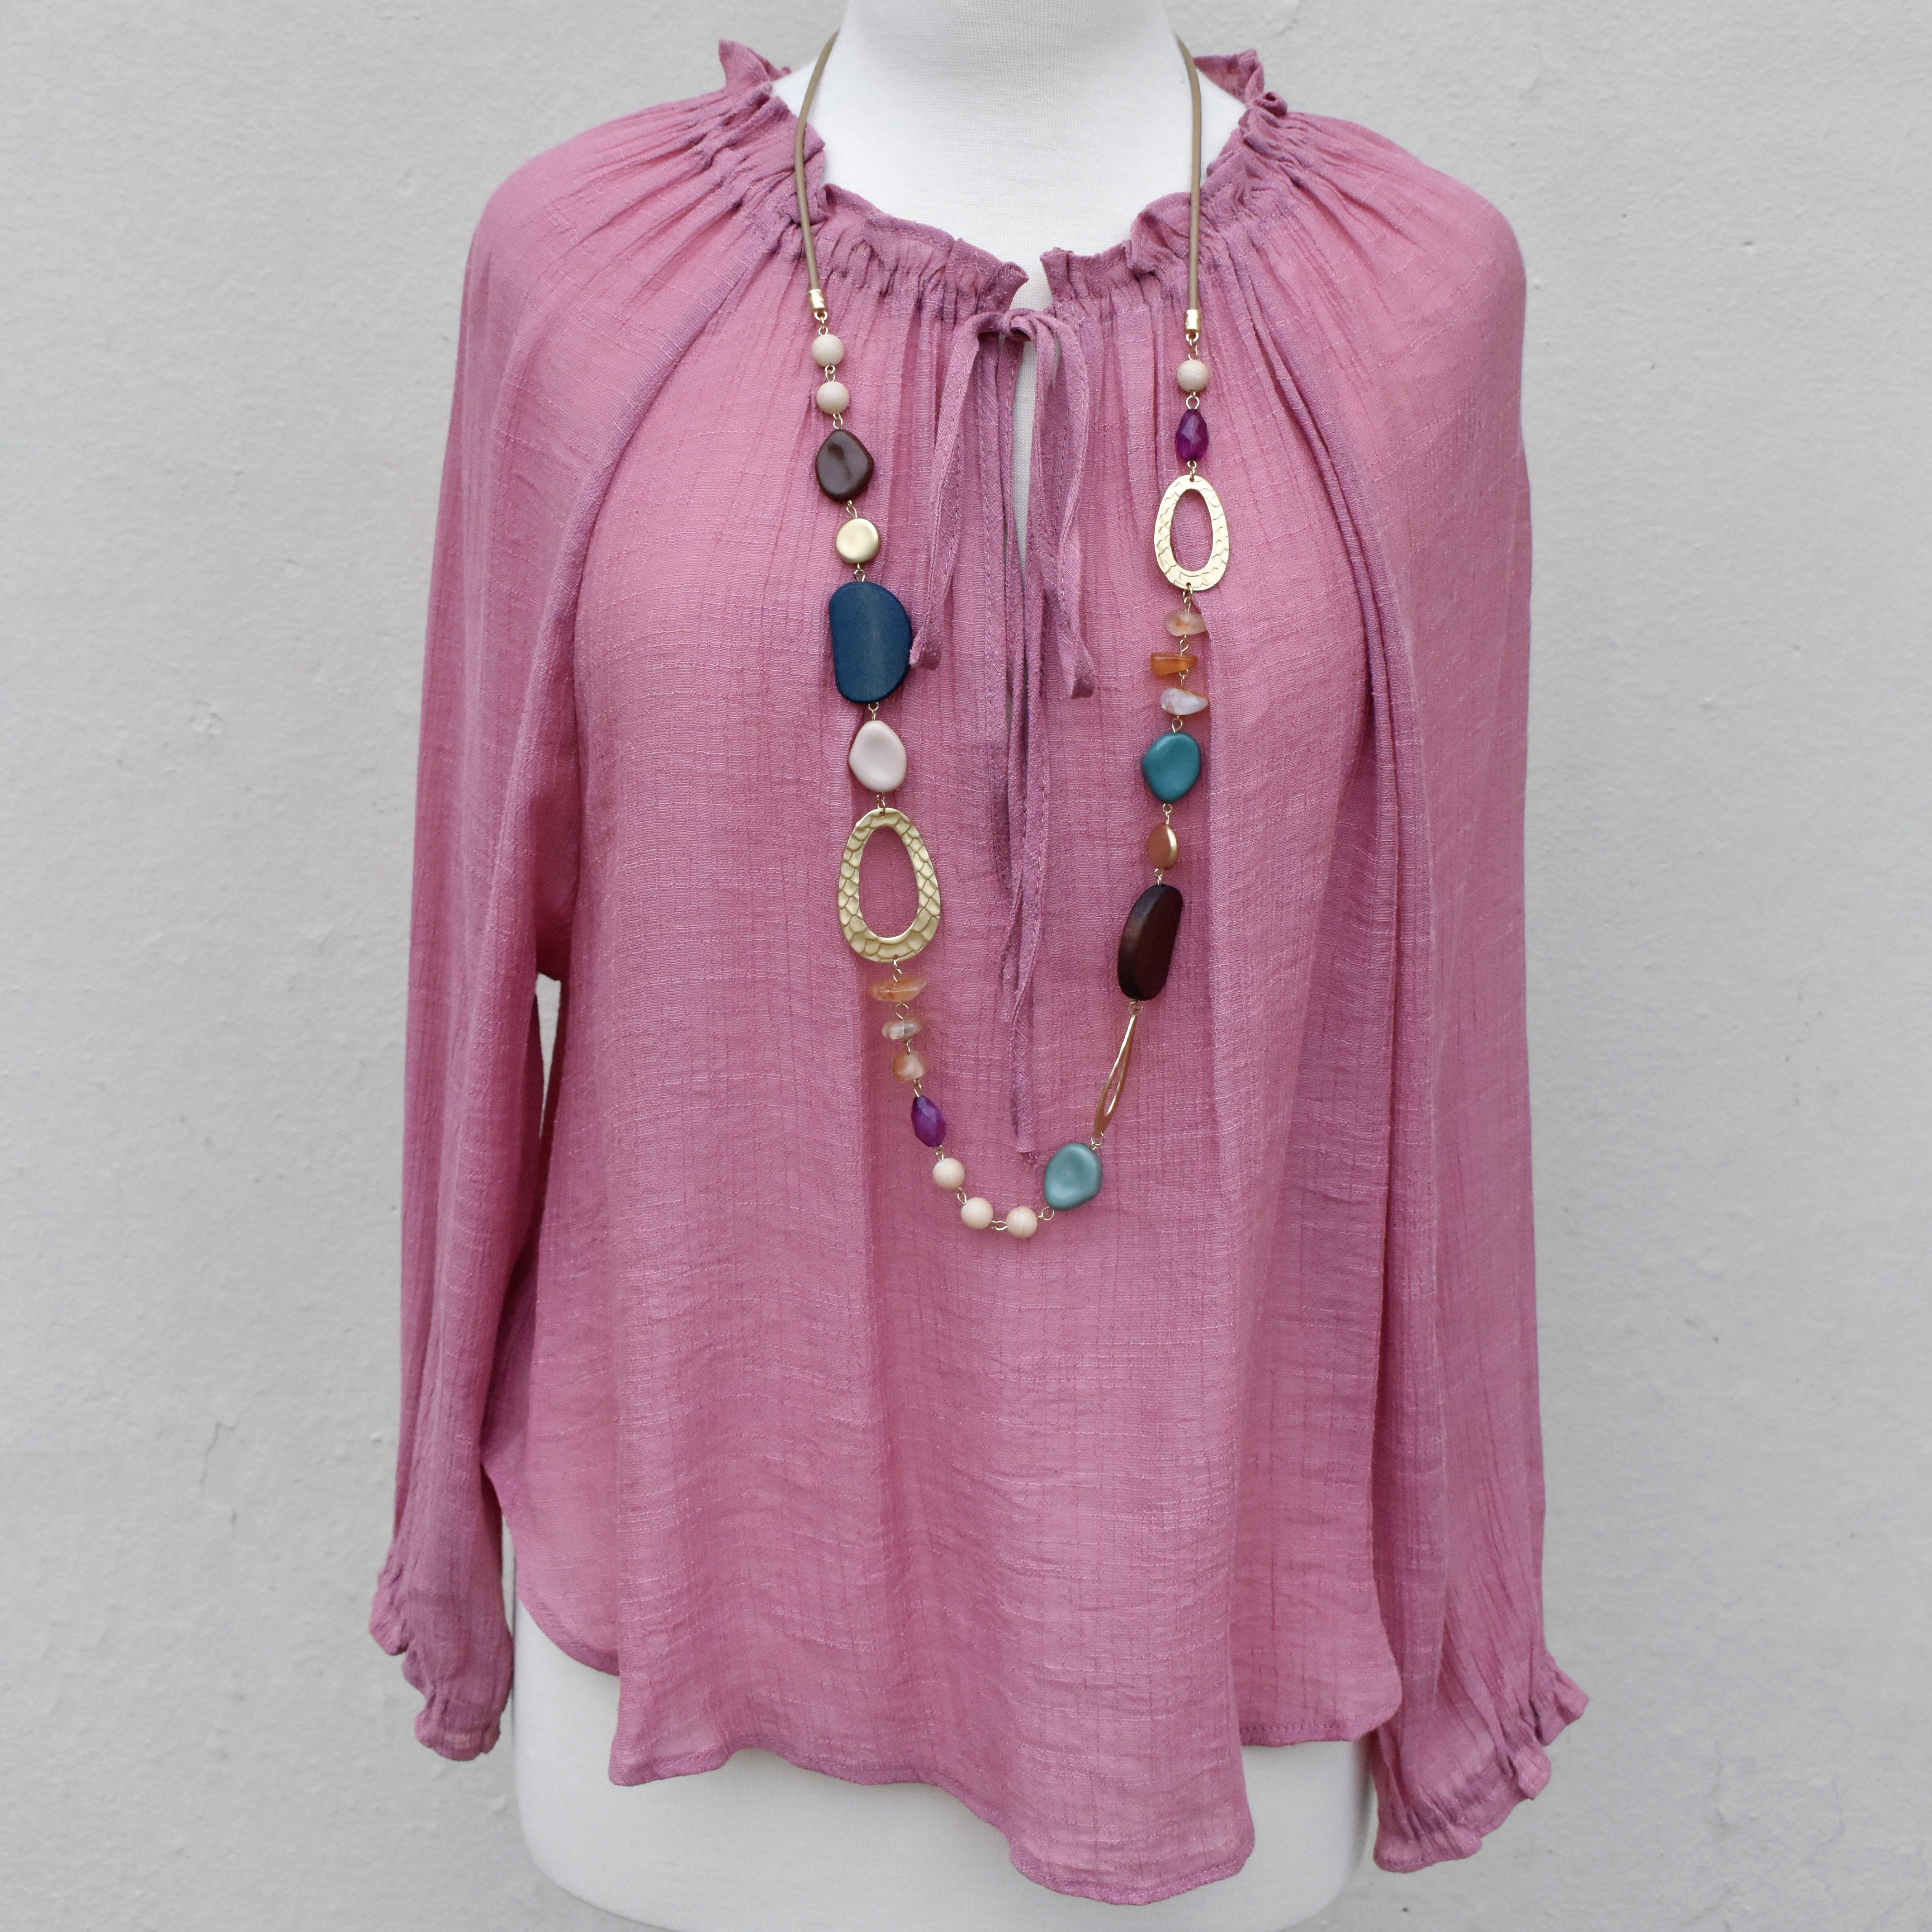 rose top with tie